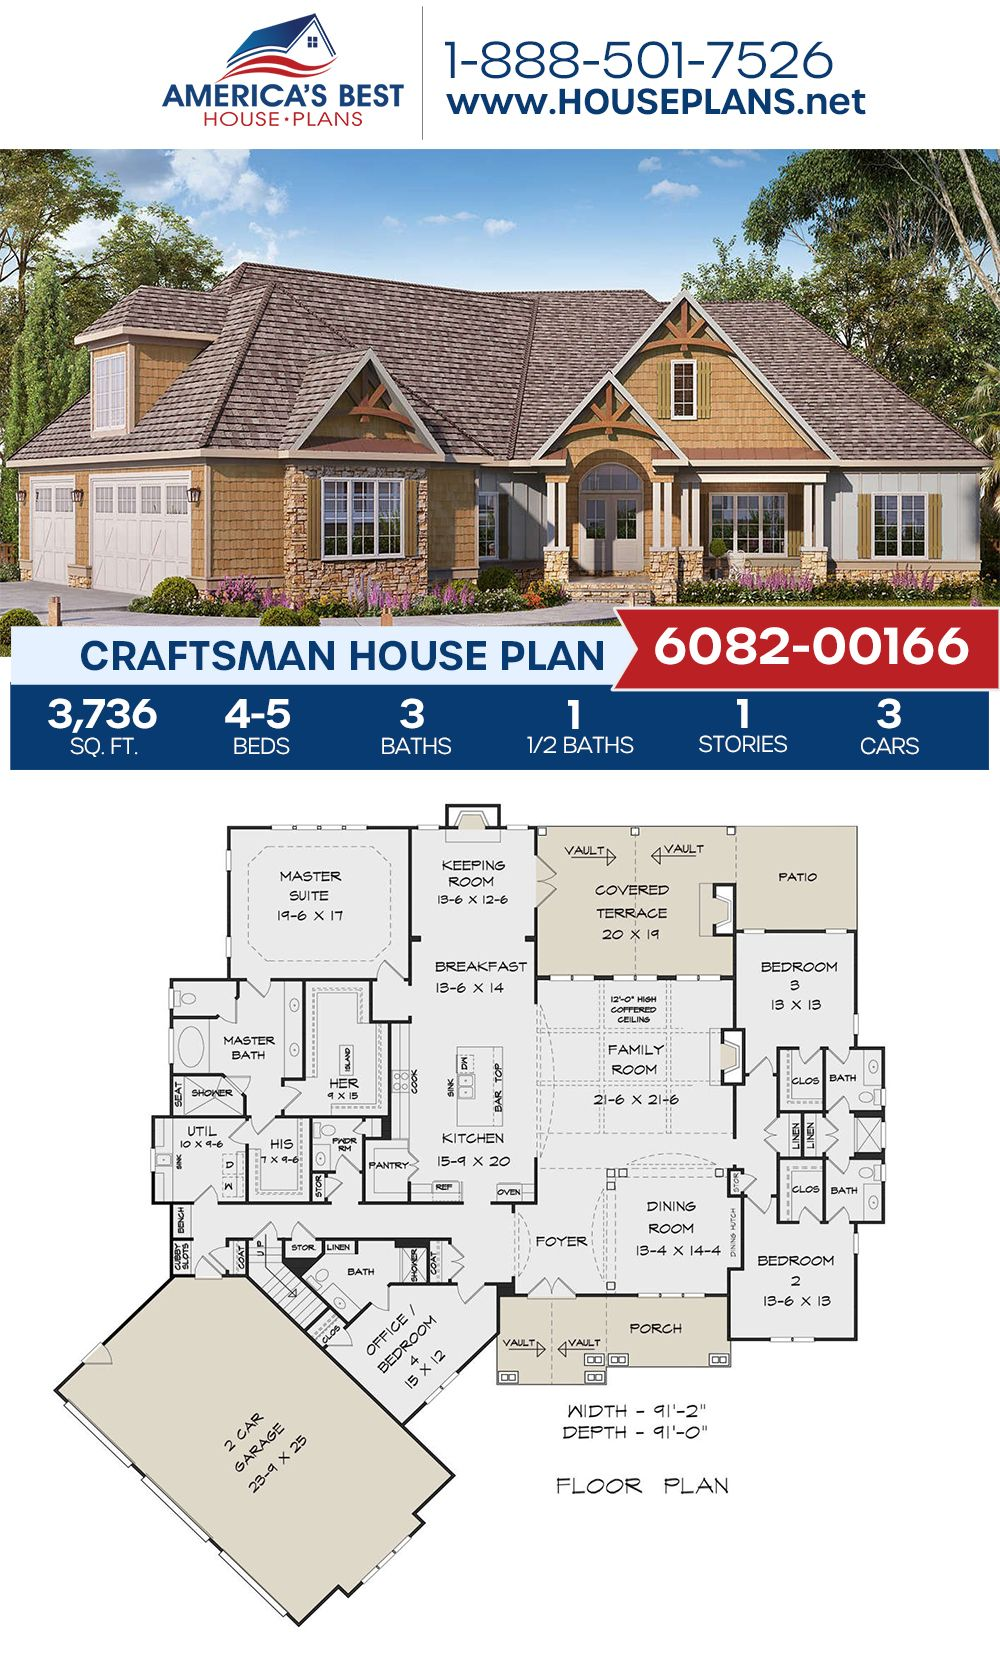 House Plan 6082 00166 Craftsman Plan 3 736 Square Feet 4 5 Bedrooms 3 5 Bathrooms Lake House Plans Affordable House Plans Craftsman House Plans